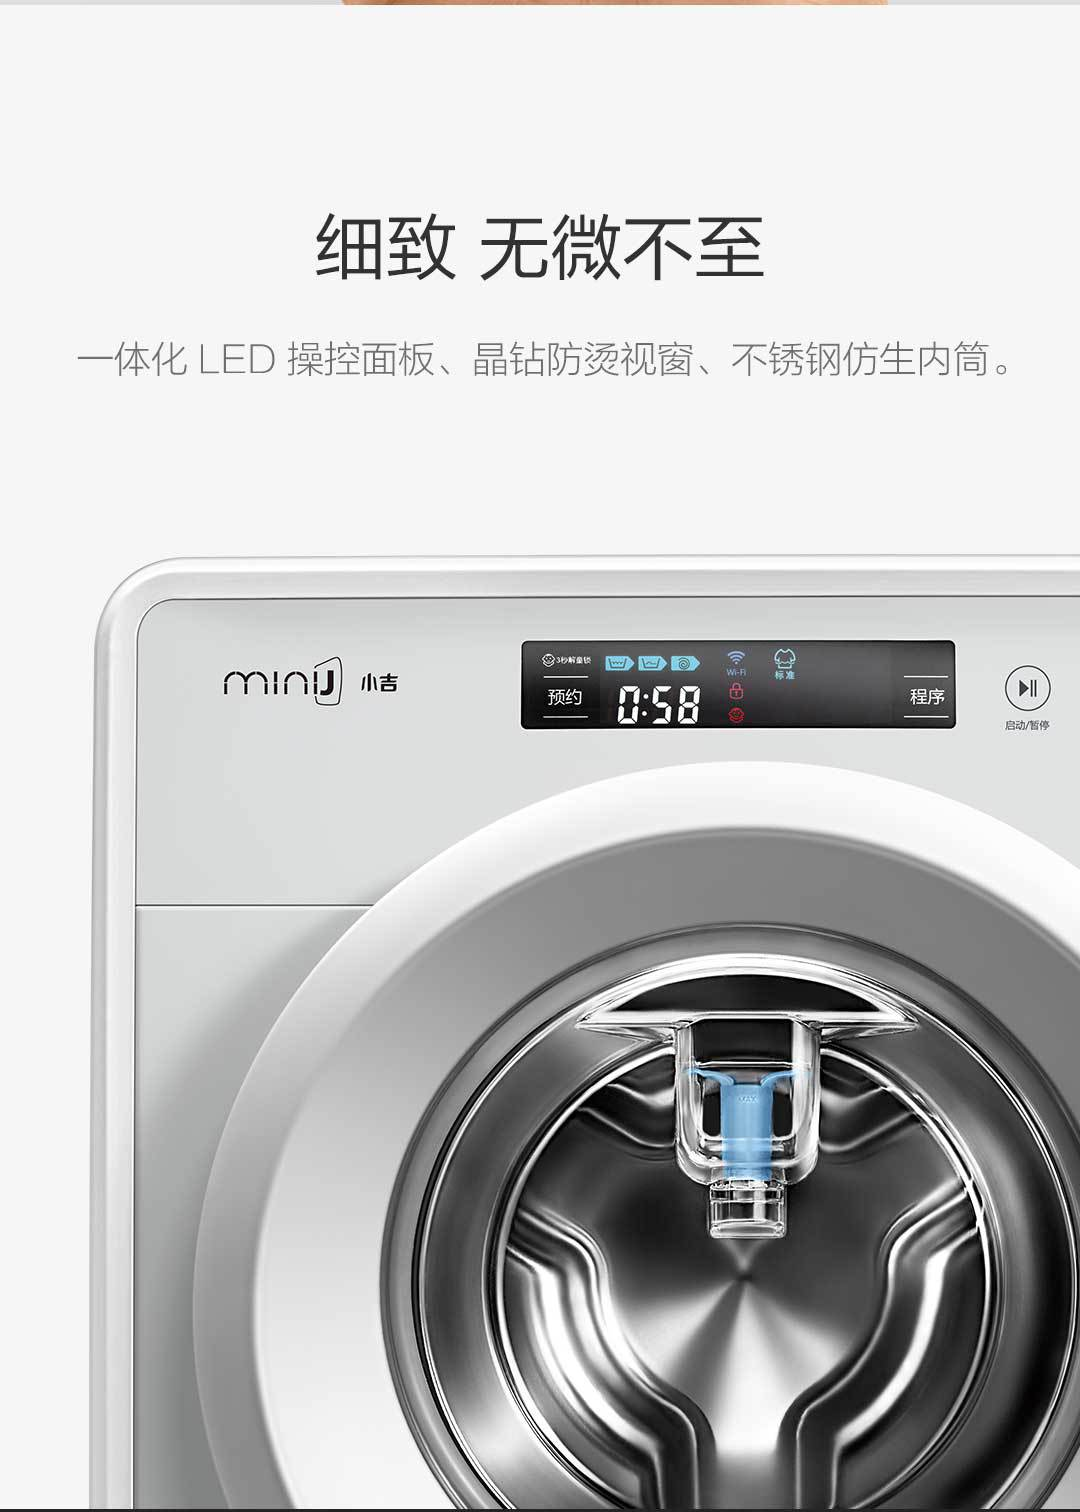 Mi Ecosystem Mini J Smart Washing Machine Crowdfunding